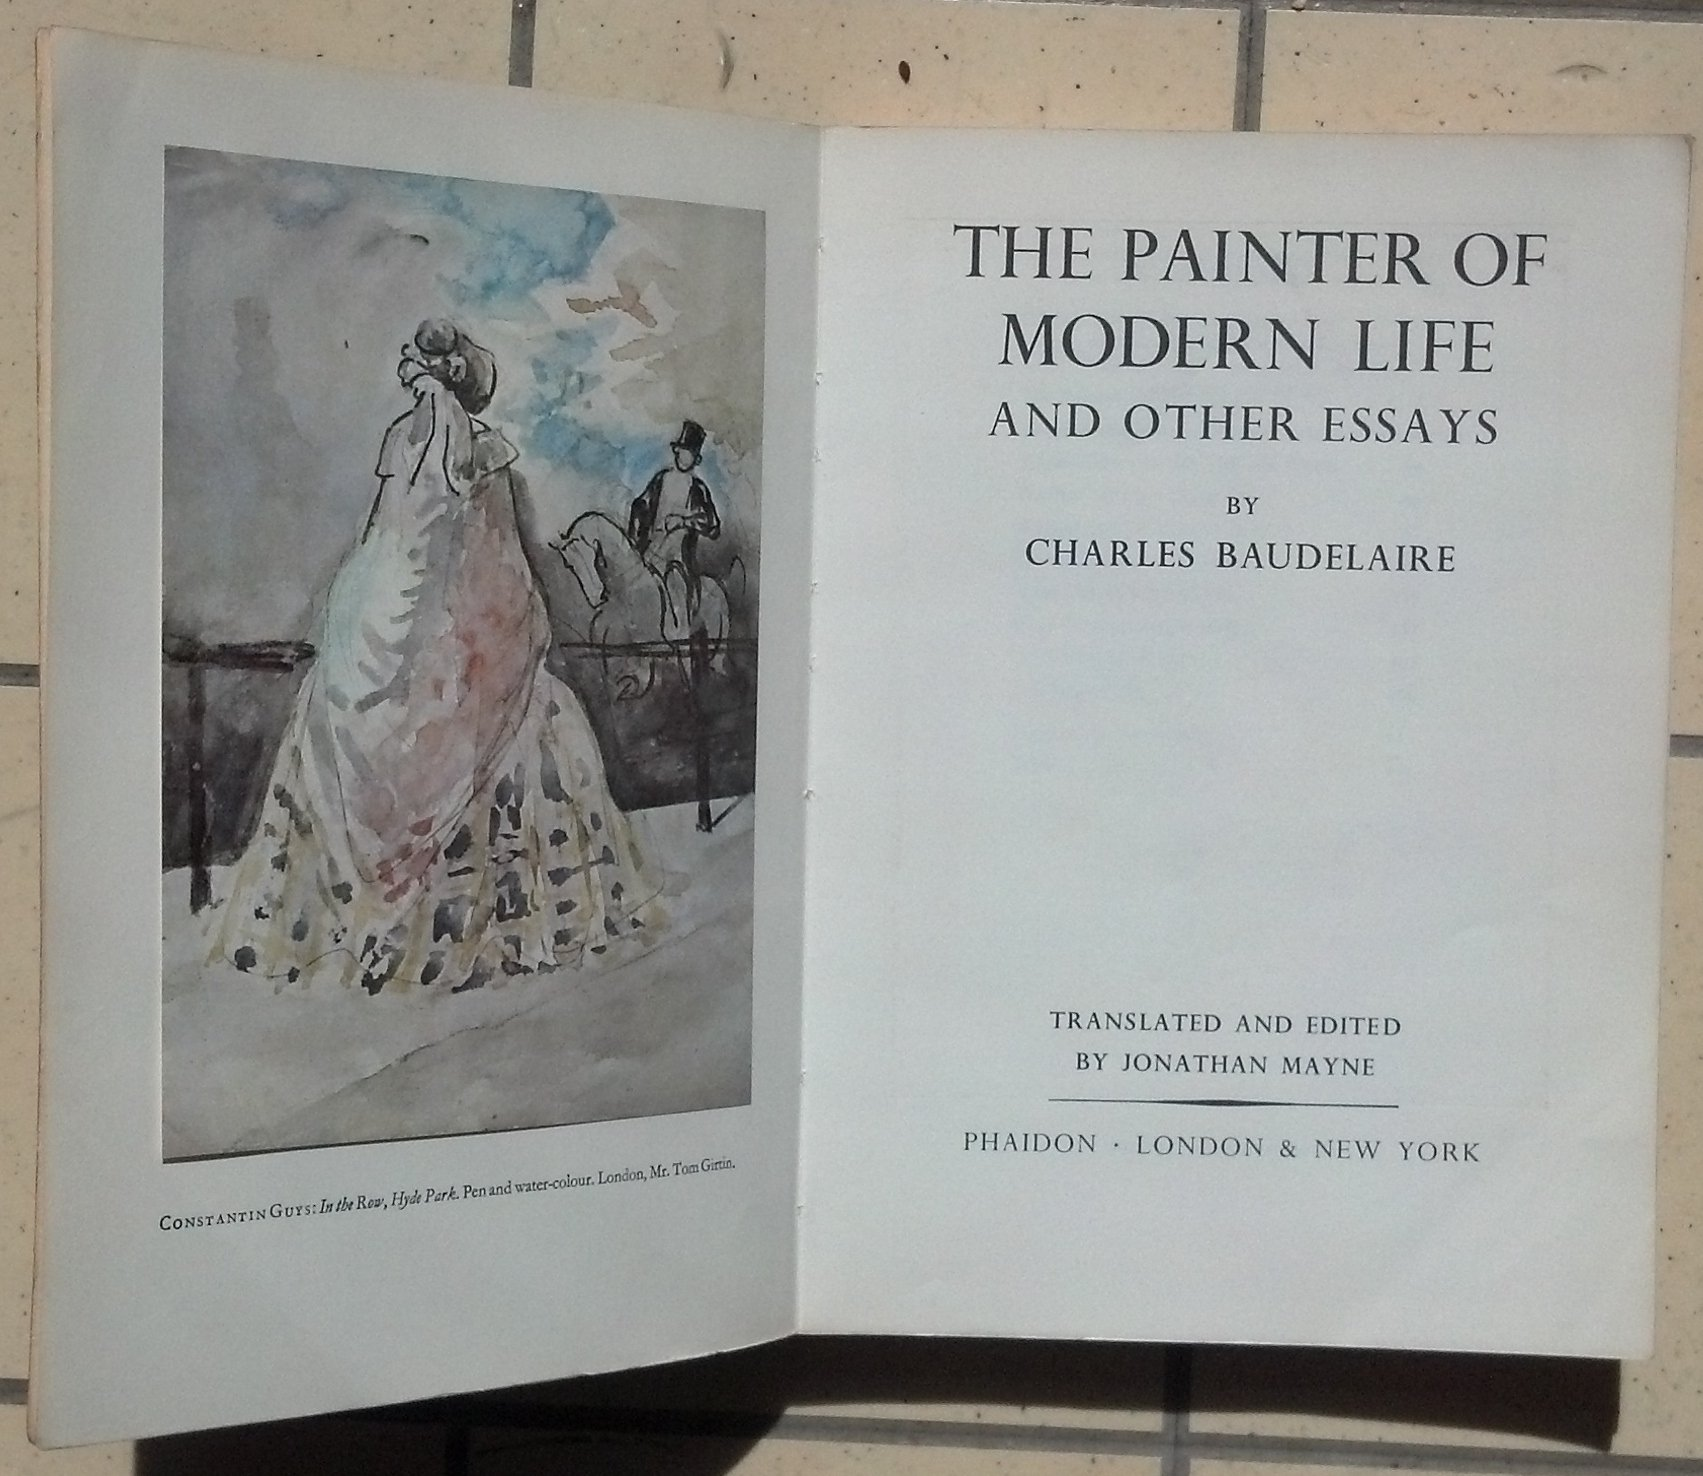 the painter of modern life and other essays citation The backdrop against which charles baudelaire wrote the essays collected in 'the painter of modern life'1 was one of extreme urban and social transformation.